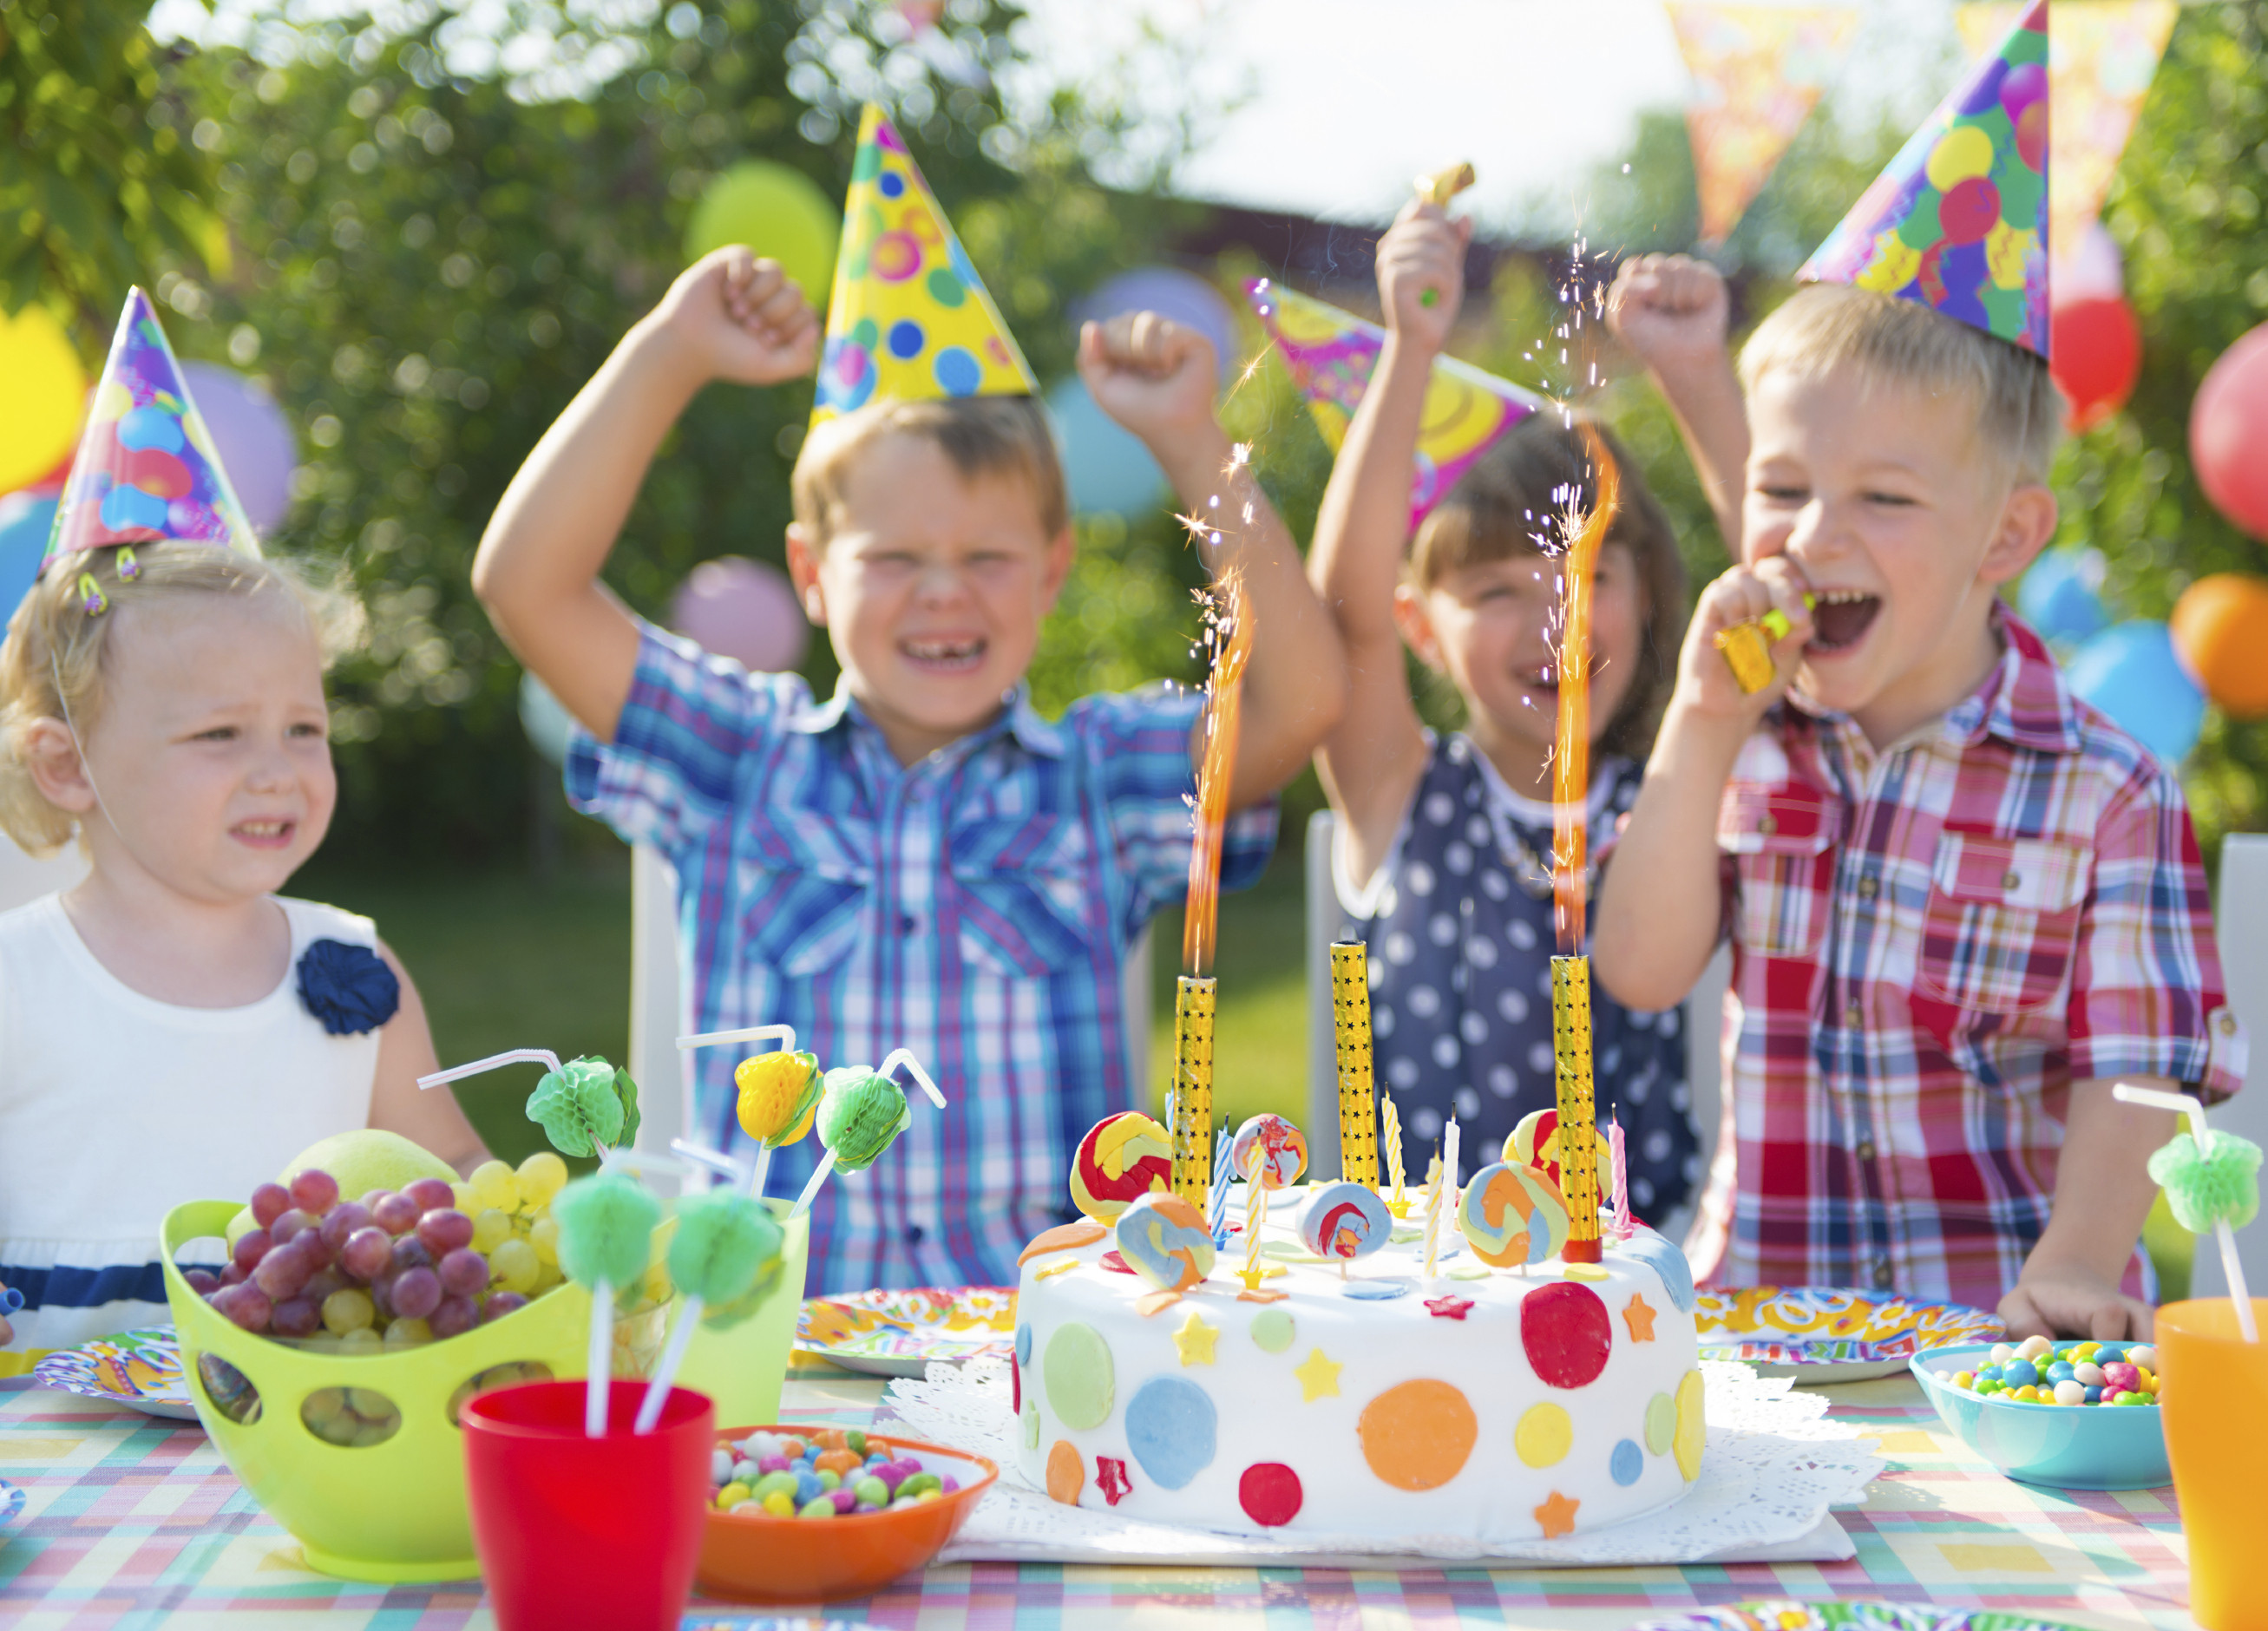 Best ideas about Kids Birthday Party . Save or Pin No Gift Birthdays Spur Charitable Giving Now.